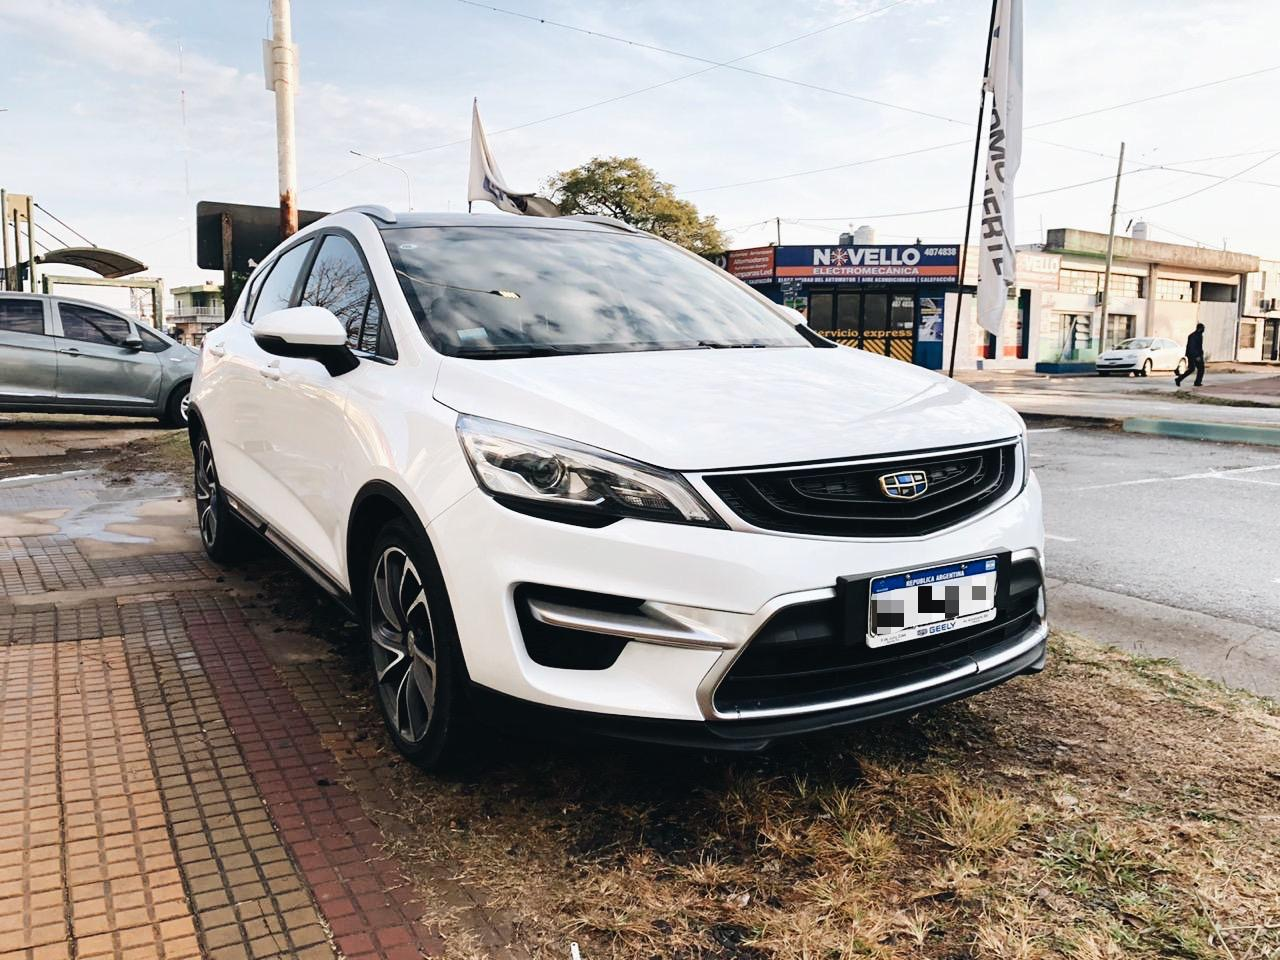 Geely Emgrand GS Executive 1.8 A/T Full 2018